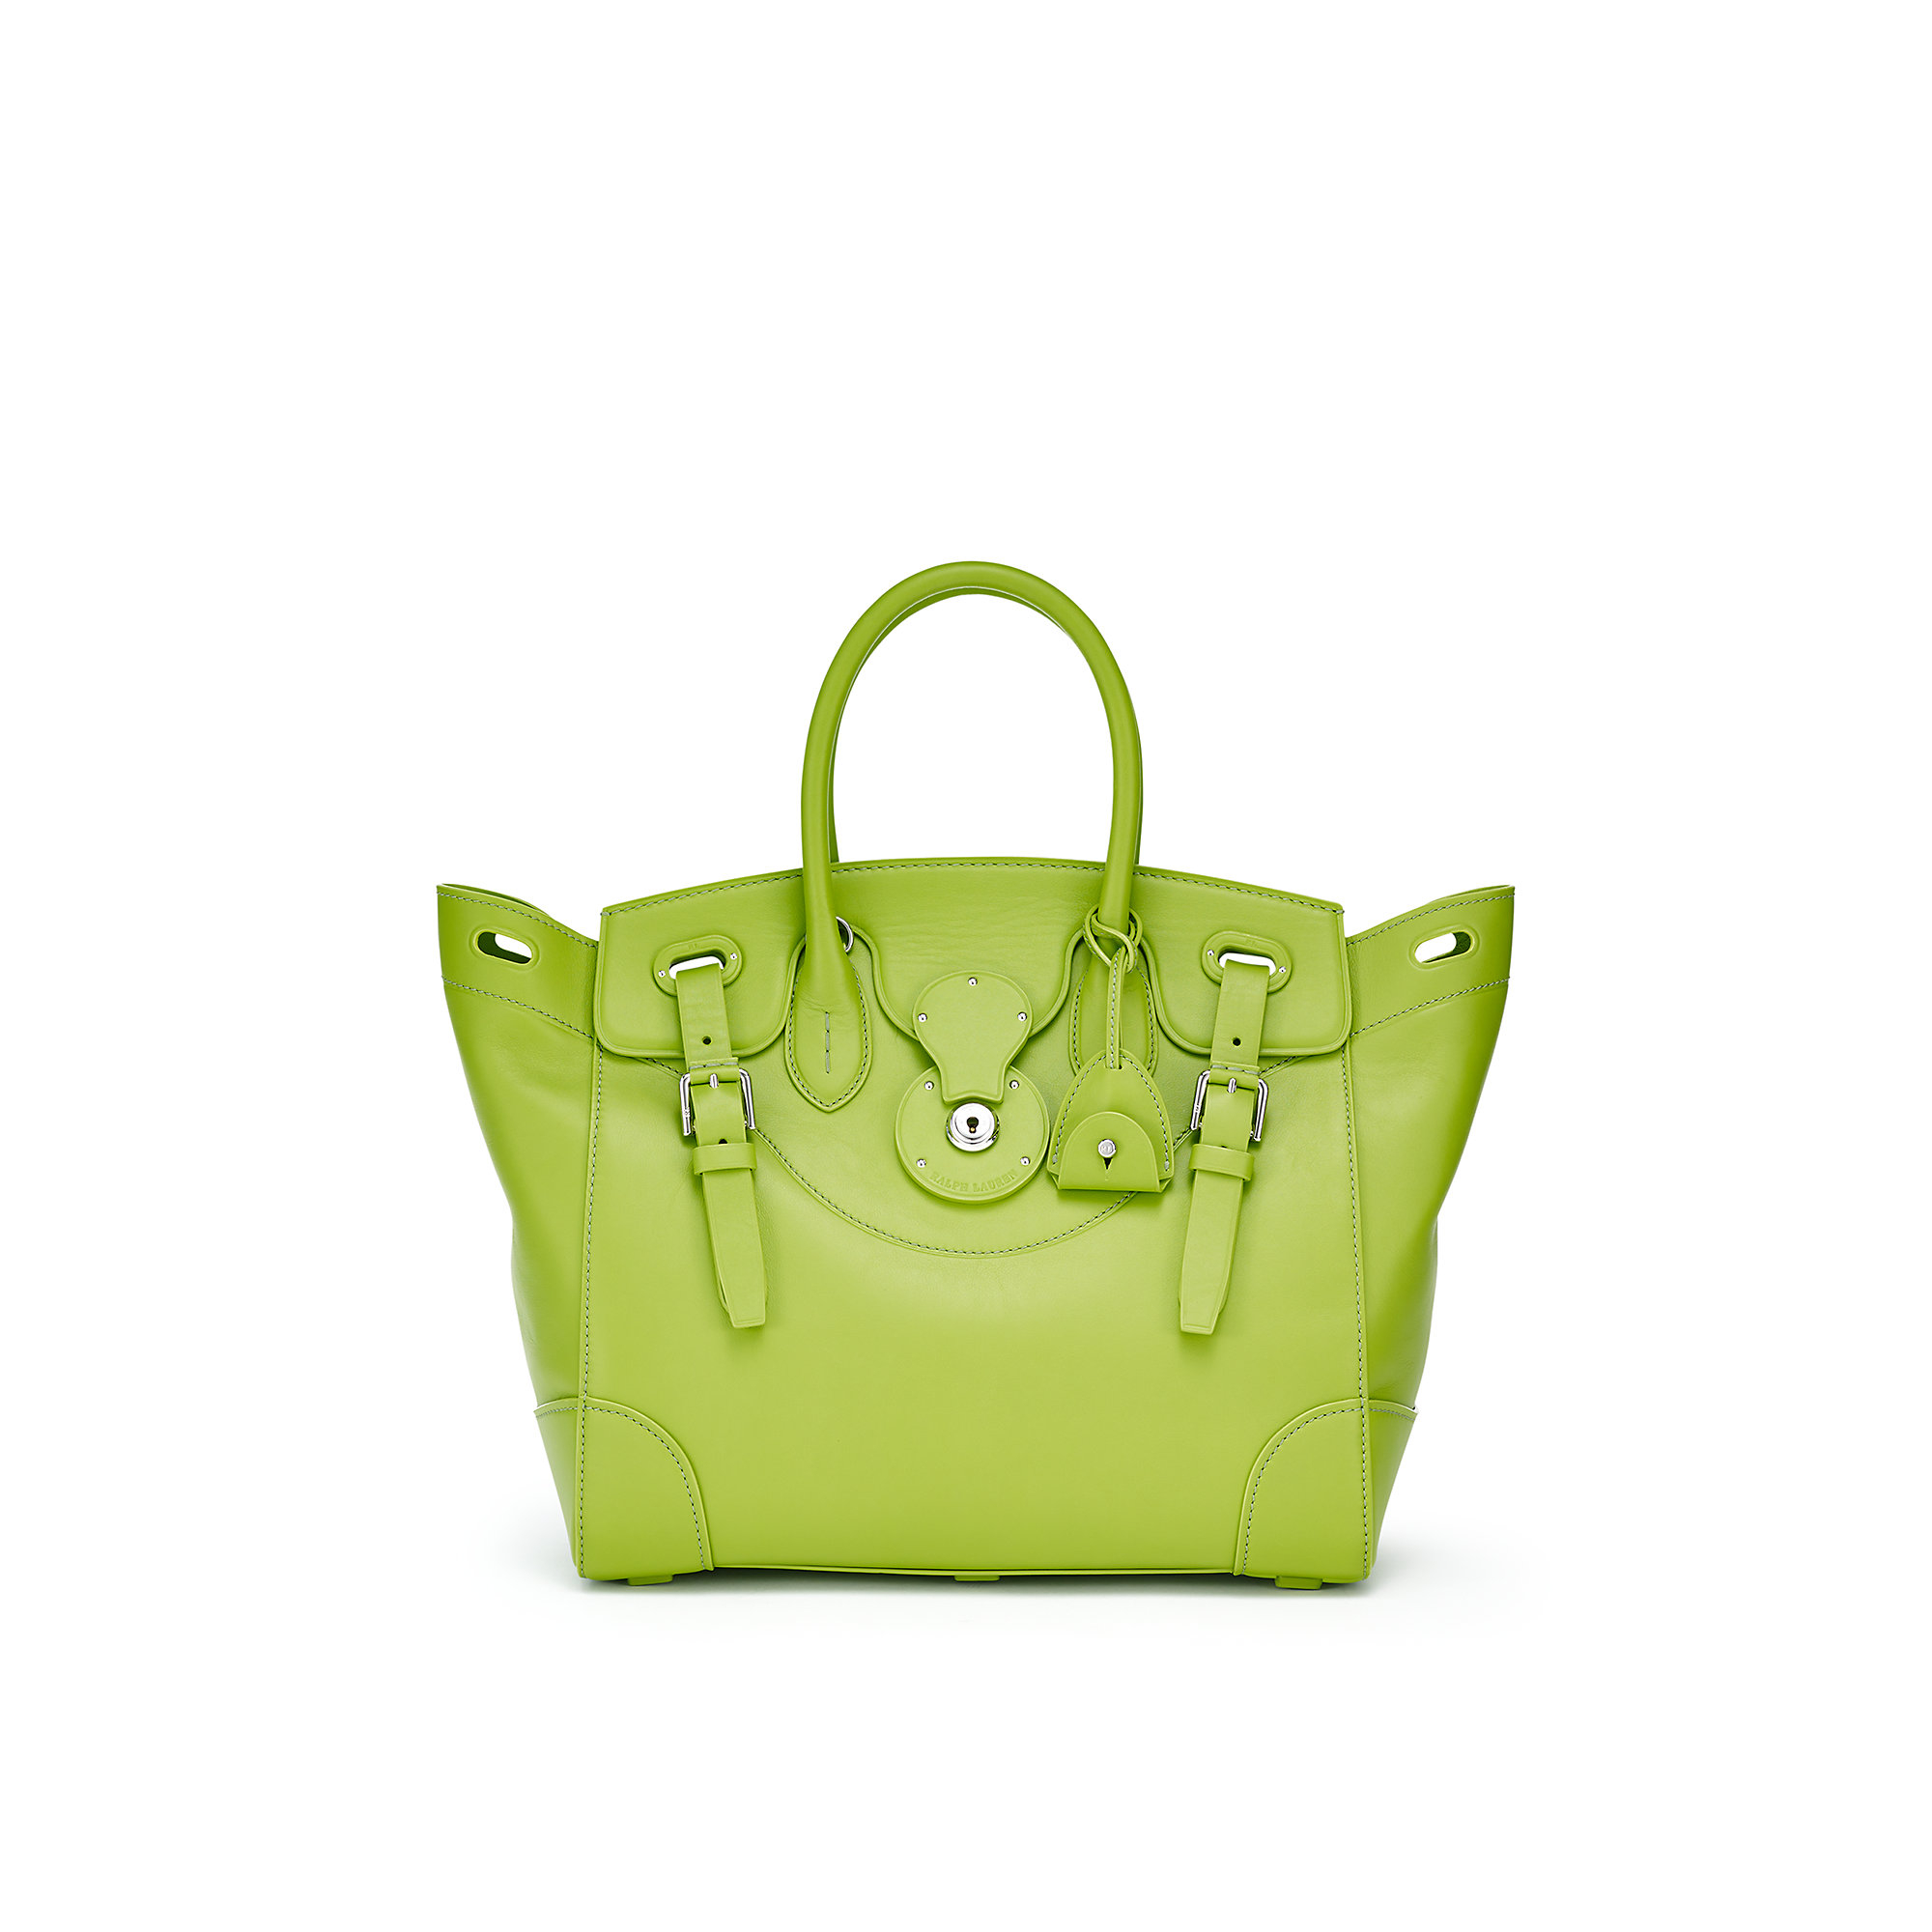 Lyst - Pink Pony Soft Ricky Bag in Green d18c52dbe87be